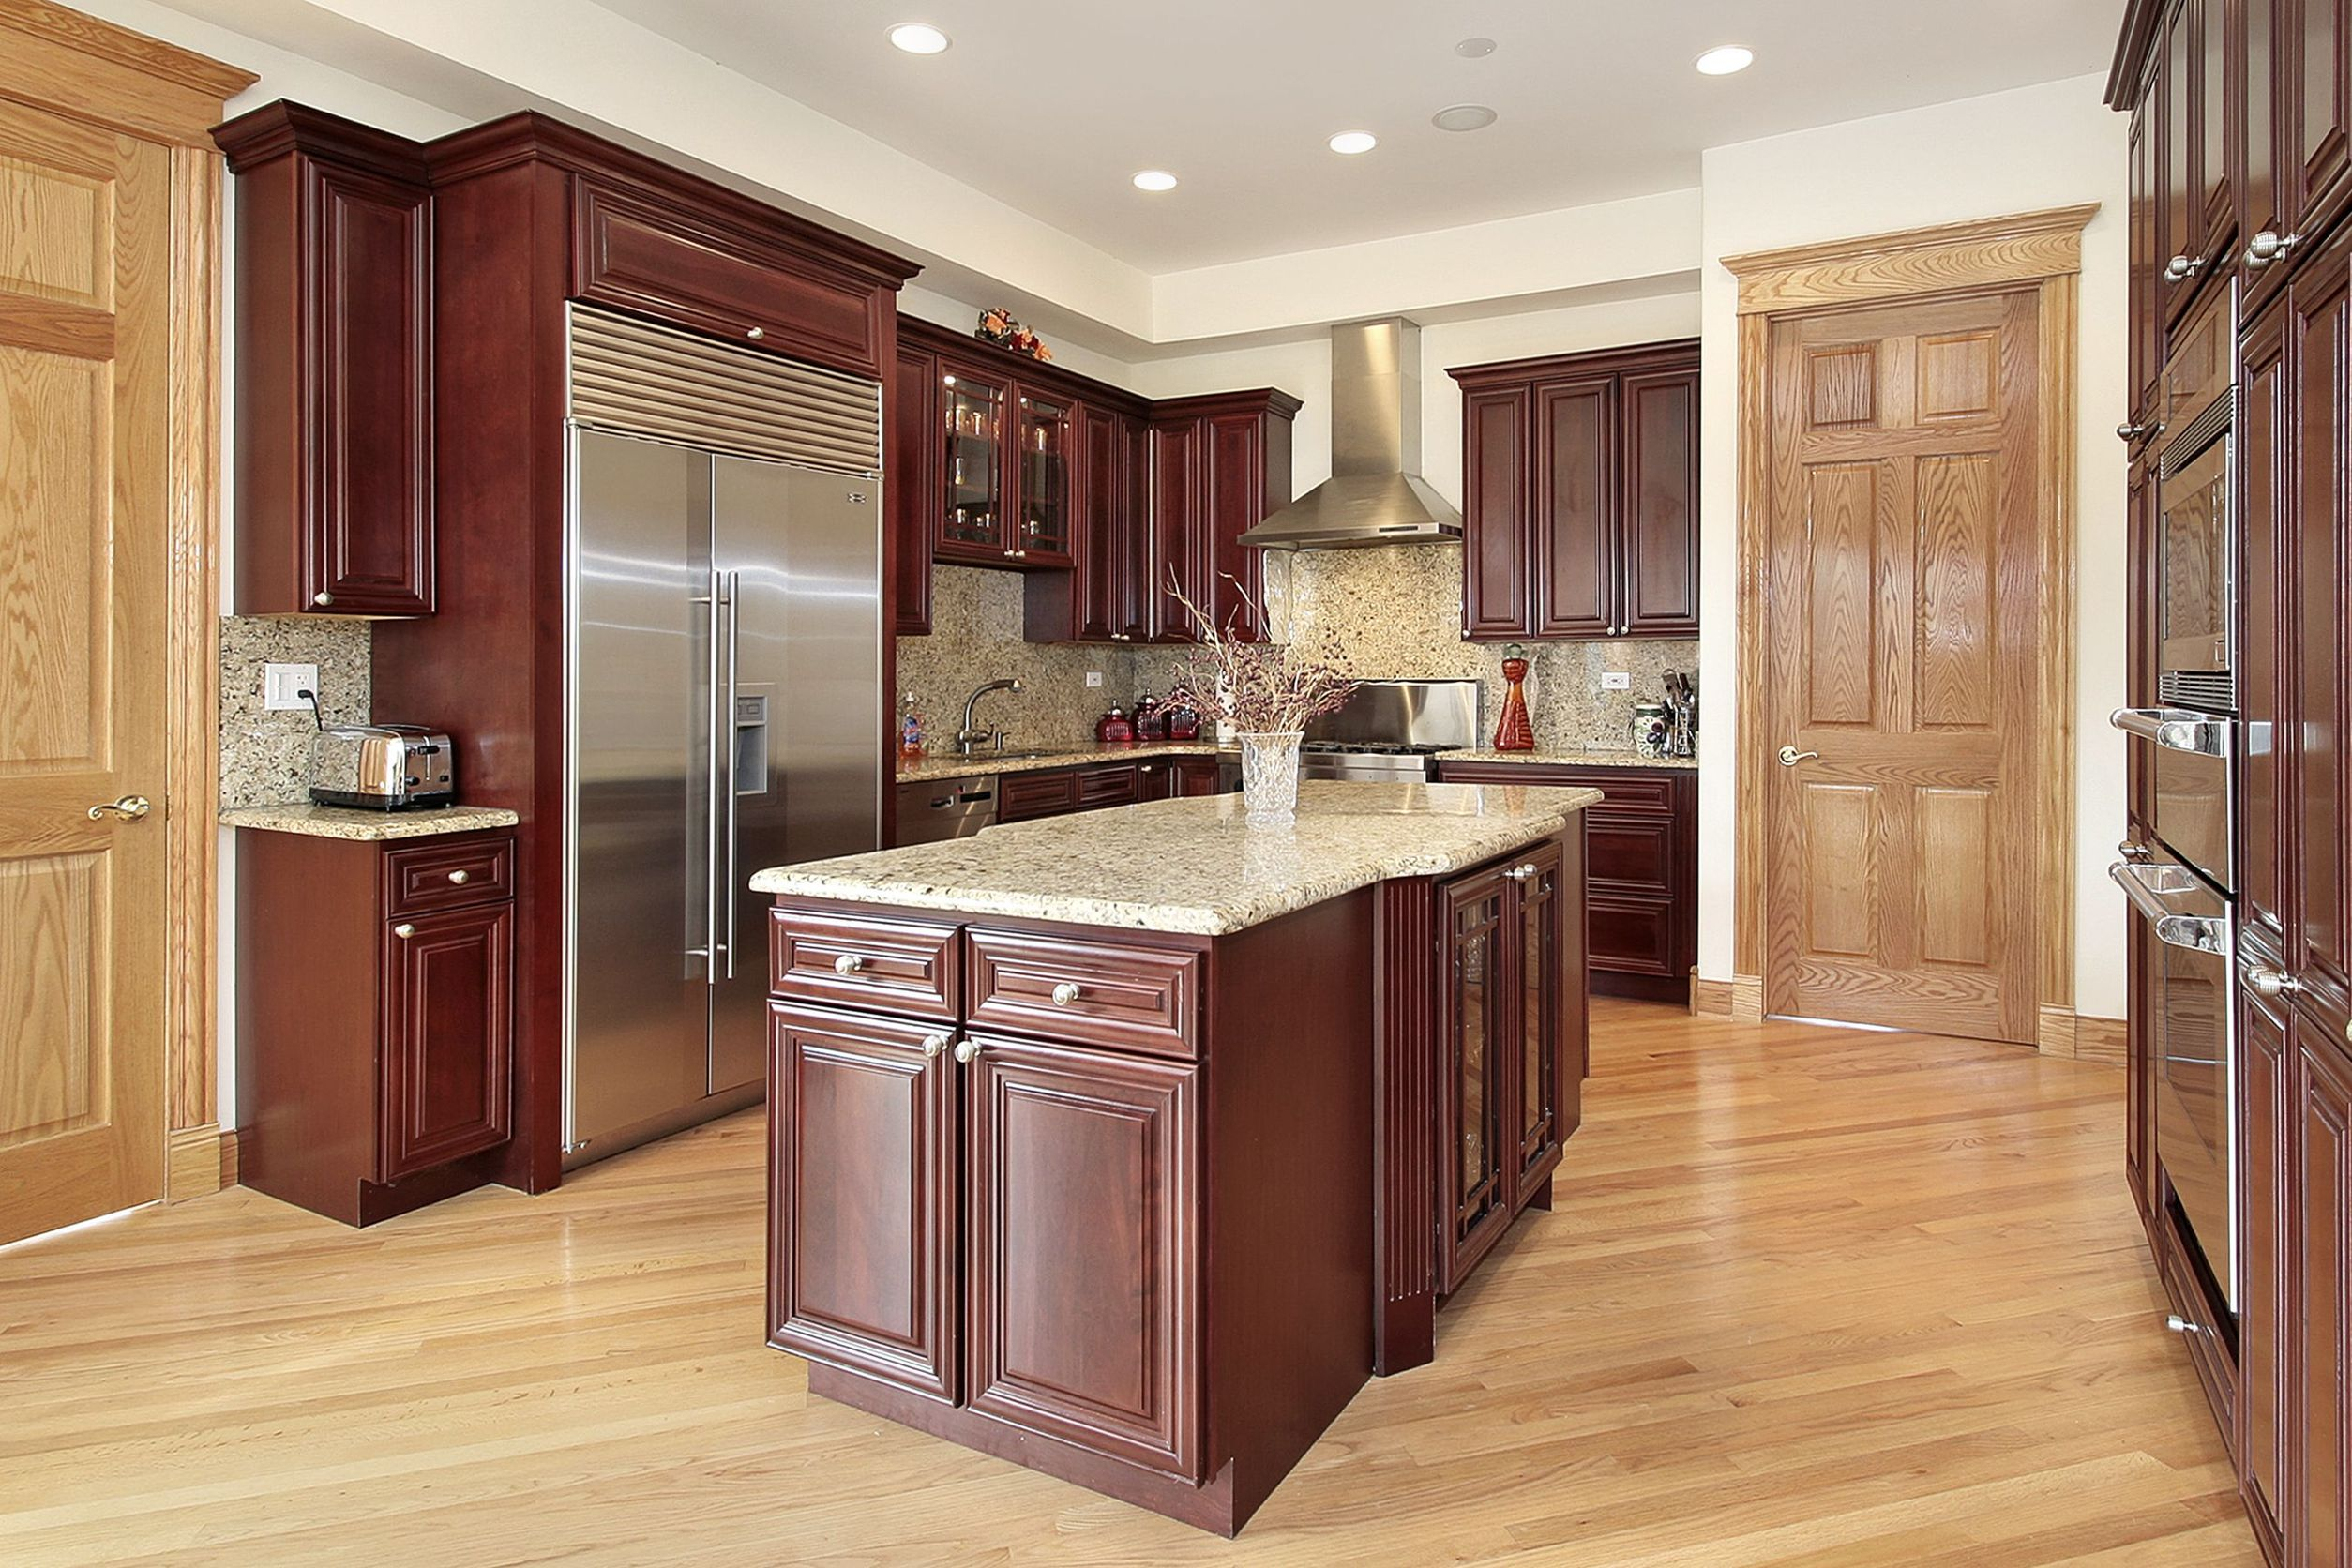 6739813 - kitchen in luxury home with cherry wood cabinetry